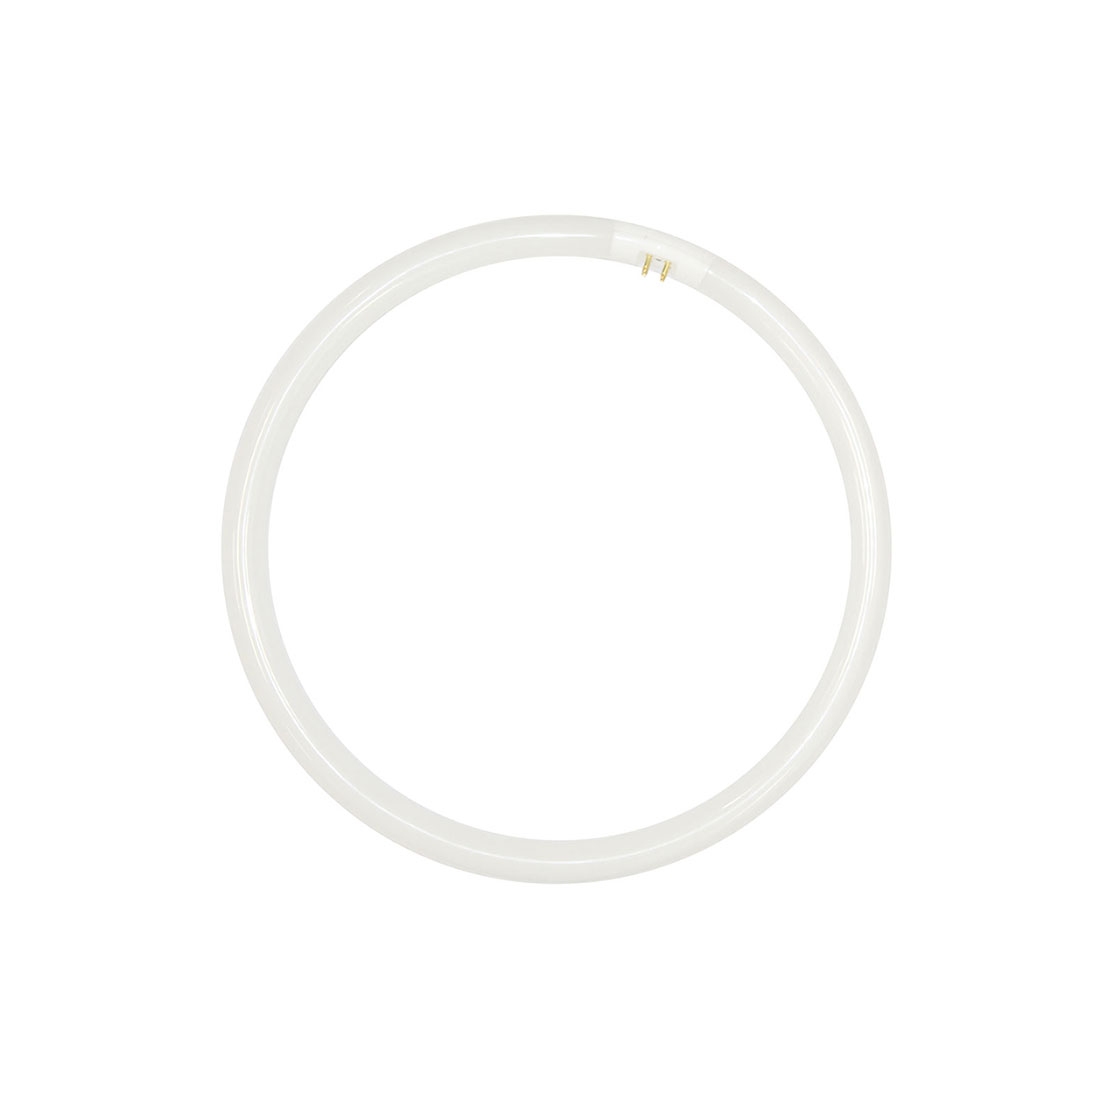 Circular T5 Fluorescent Tube 22w Warm White